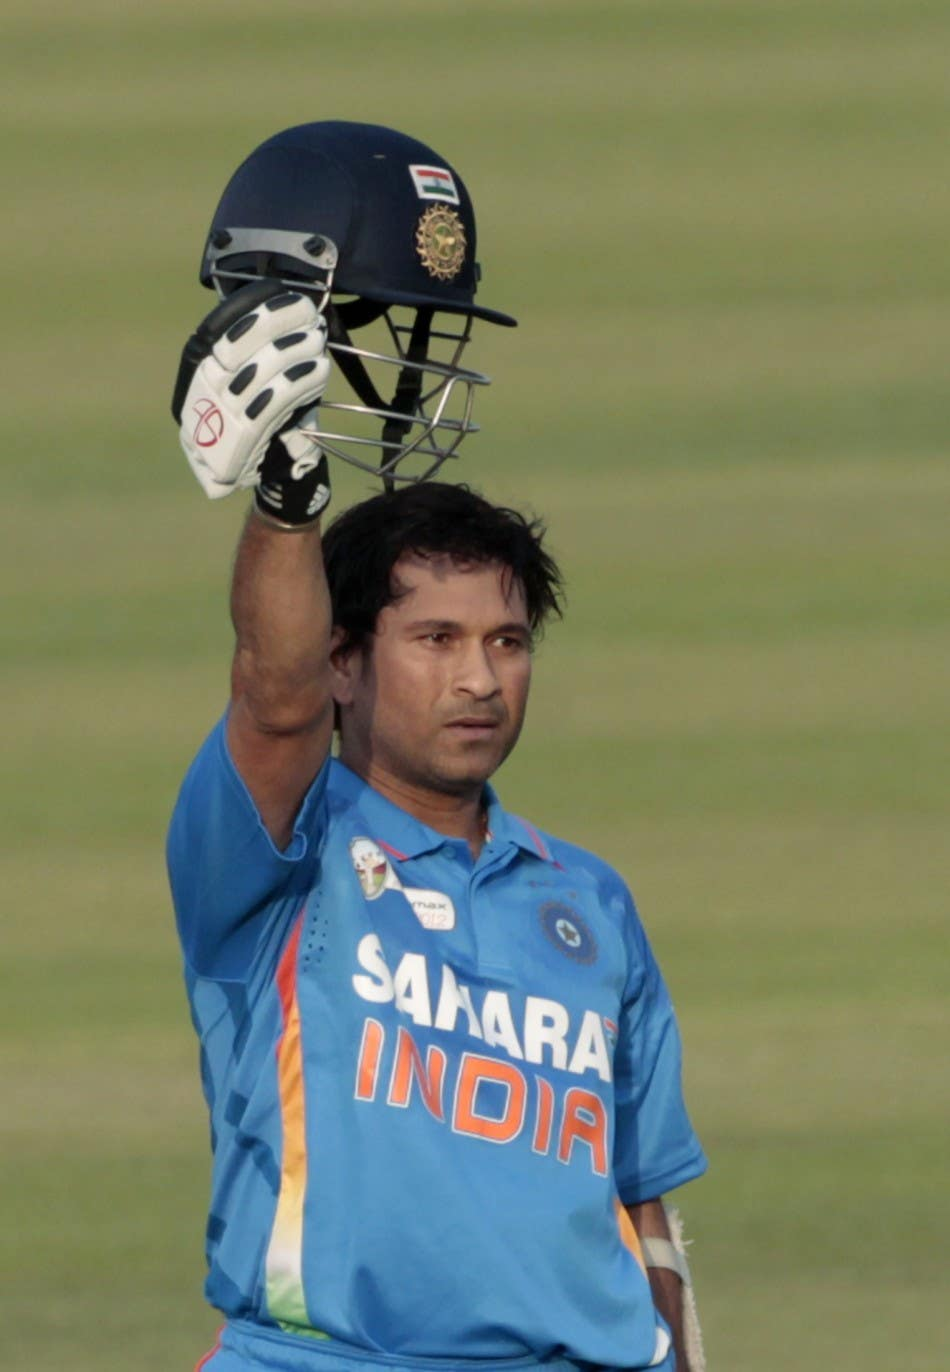 249358-indias-sachin-tendulkar-celebrates-after-he-scored-hi.jpg